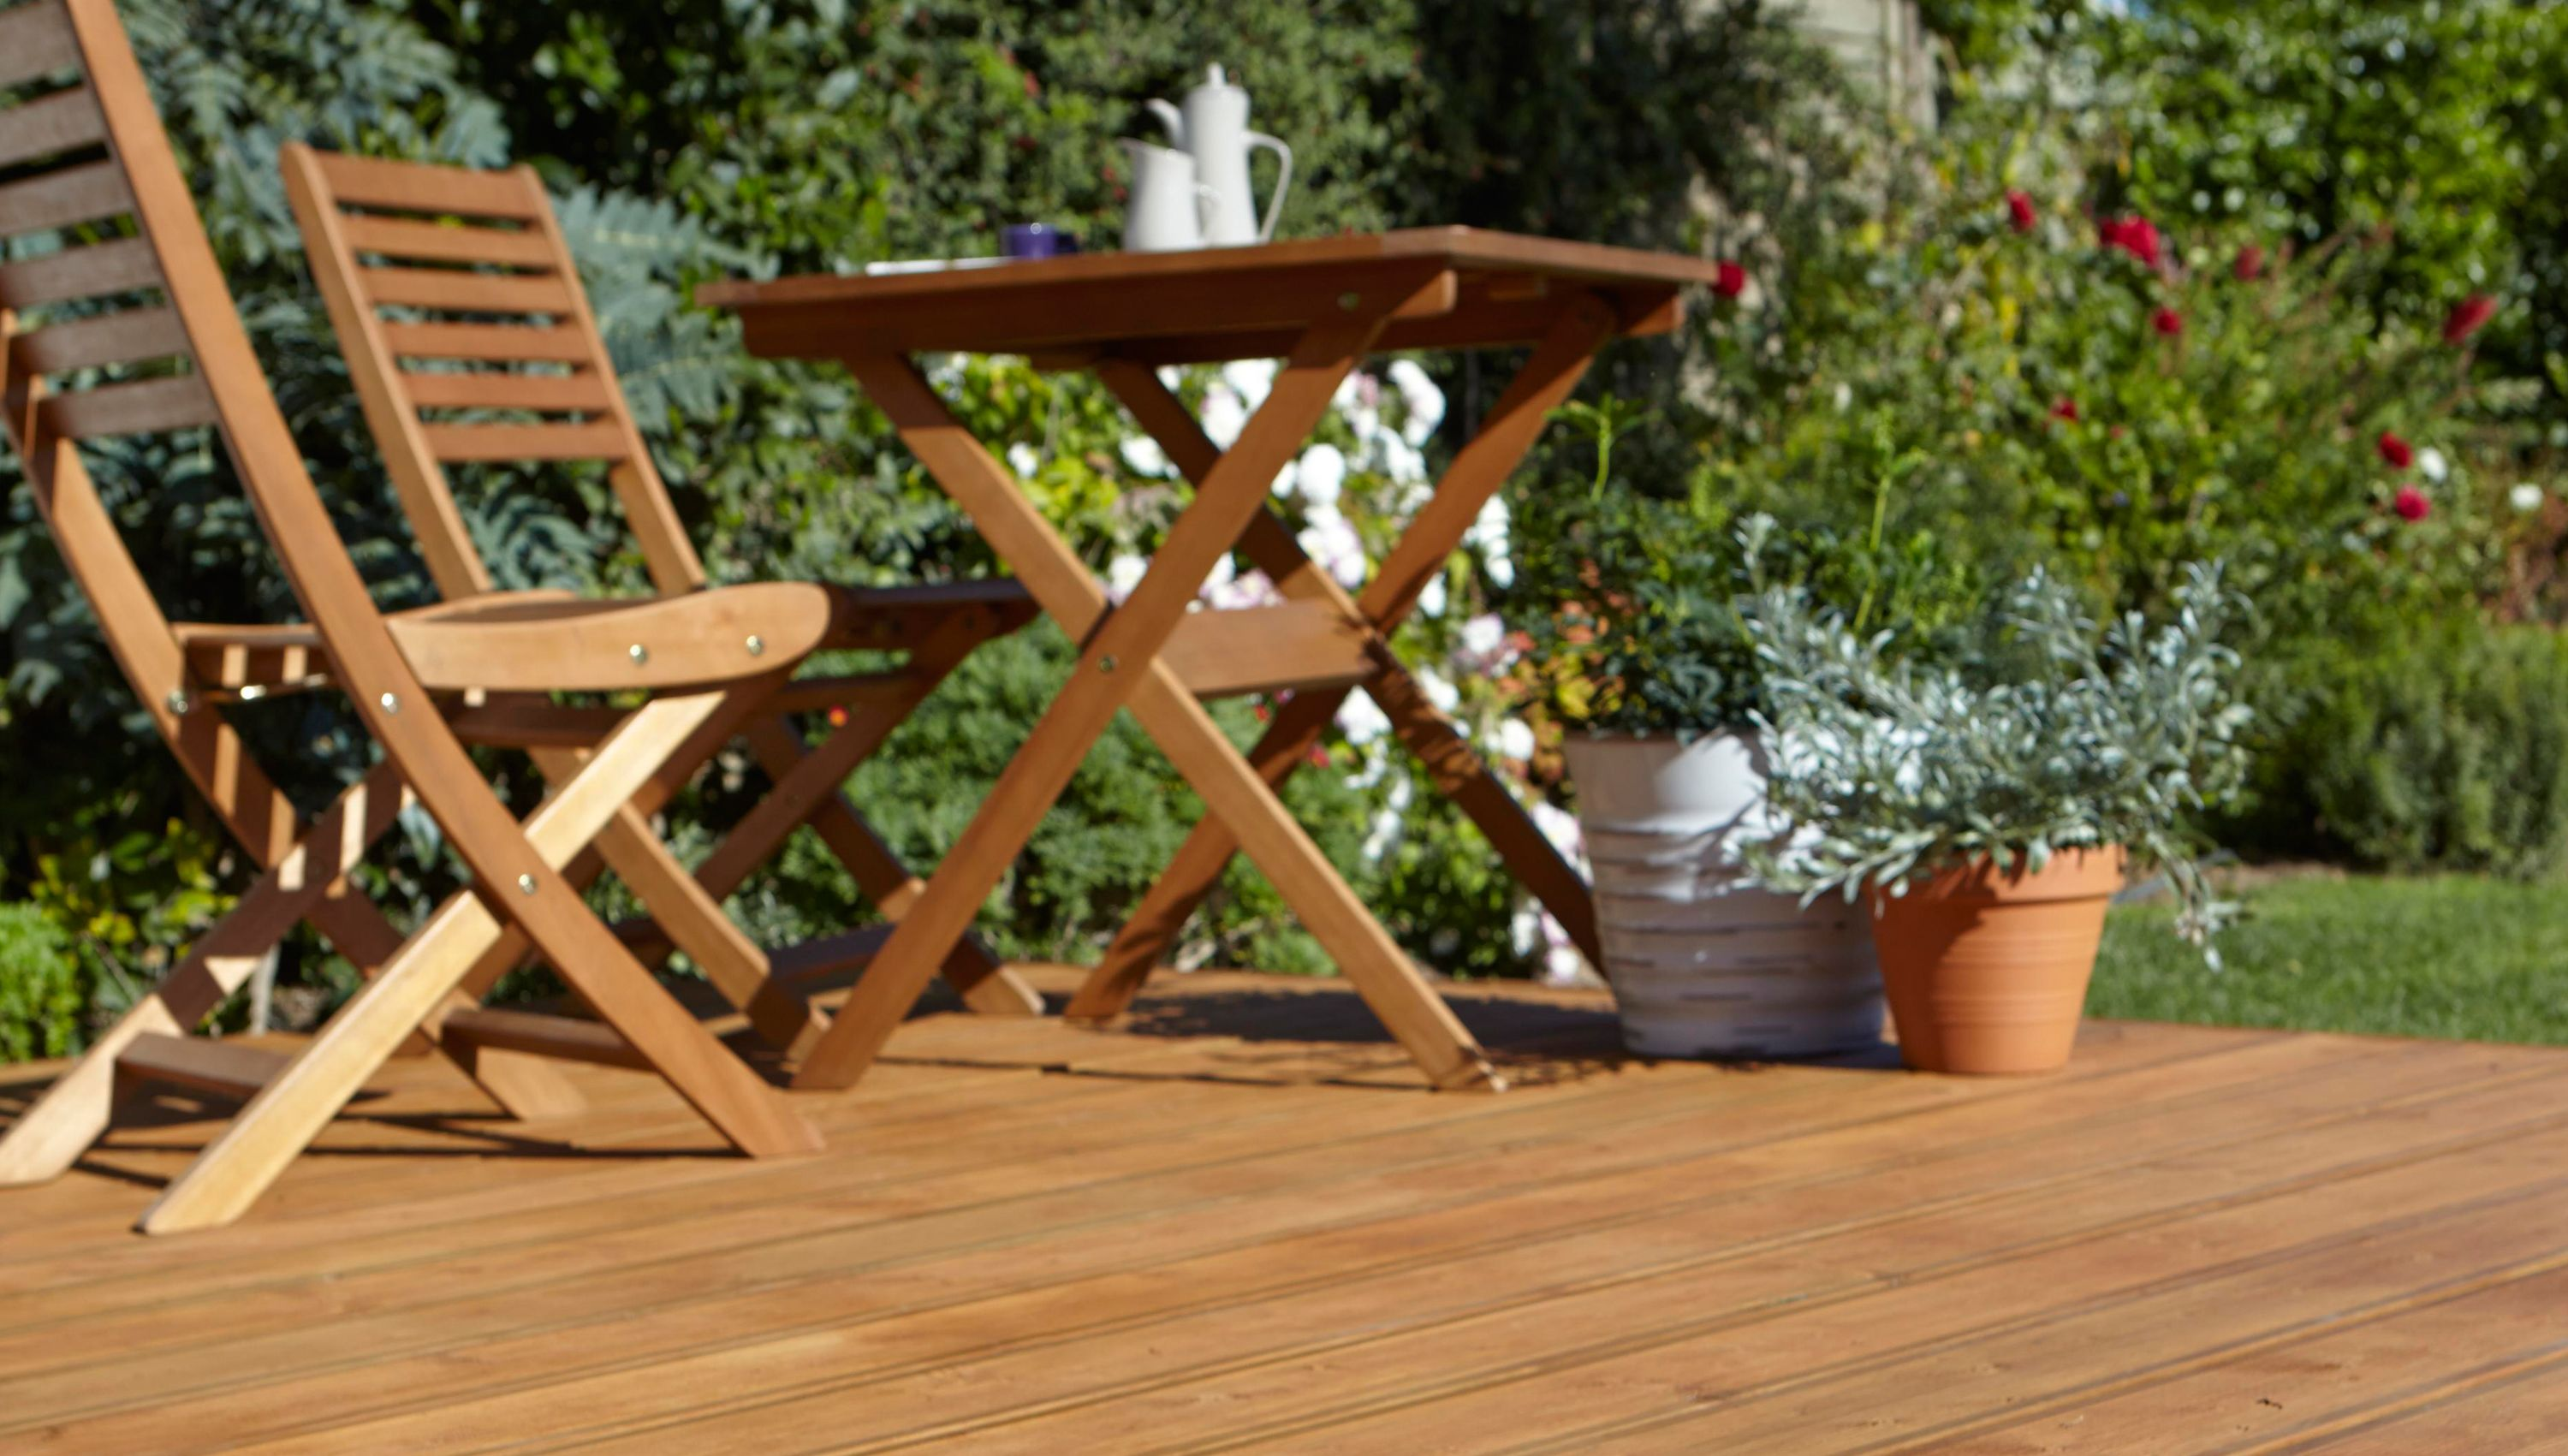 How to build a basic ground level deck ideas advice for Garden decking designs pictures